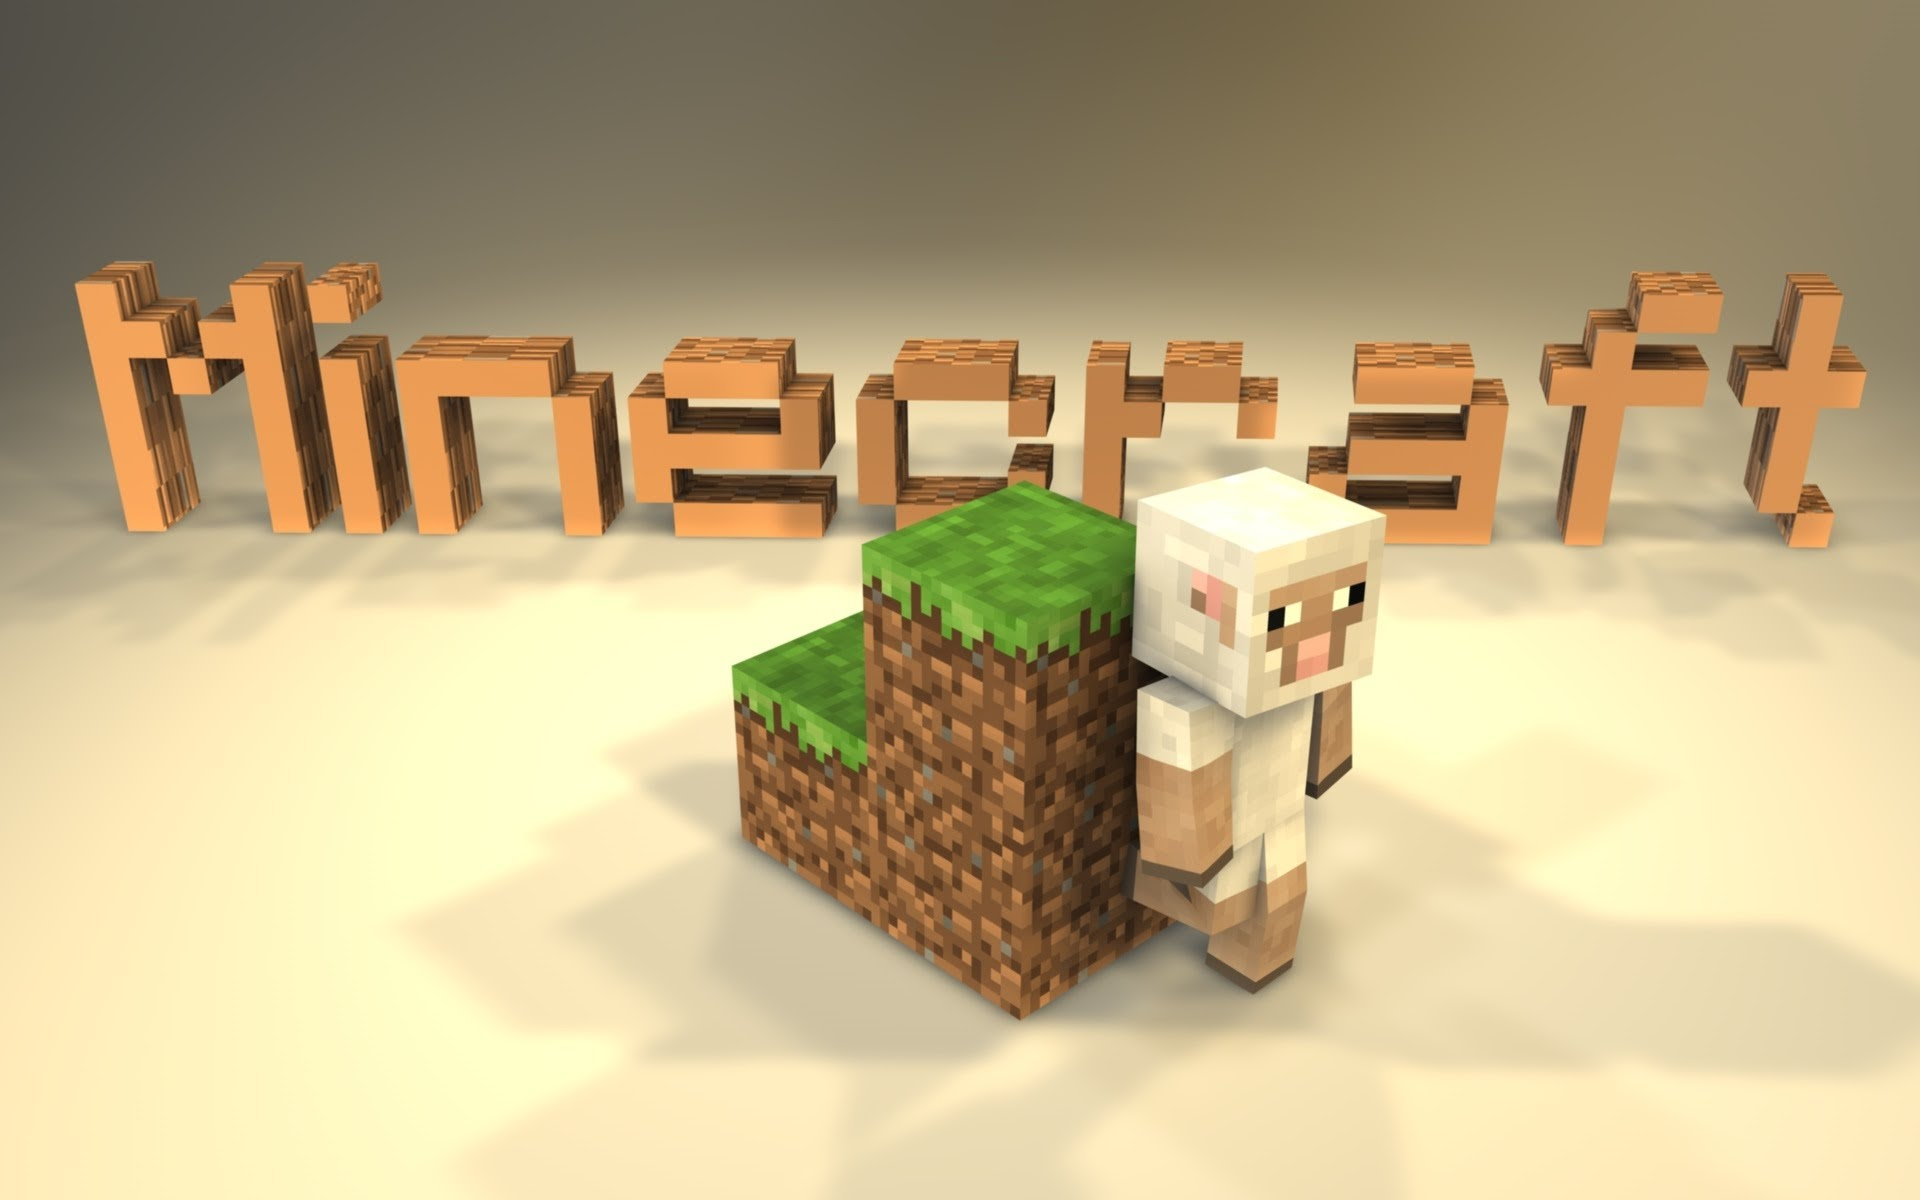 minecraft 1920x1200 wallpaper high - photo #24